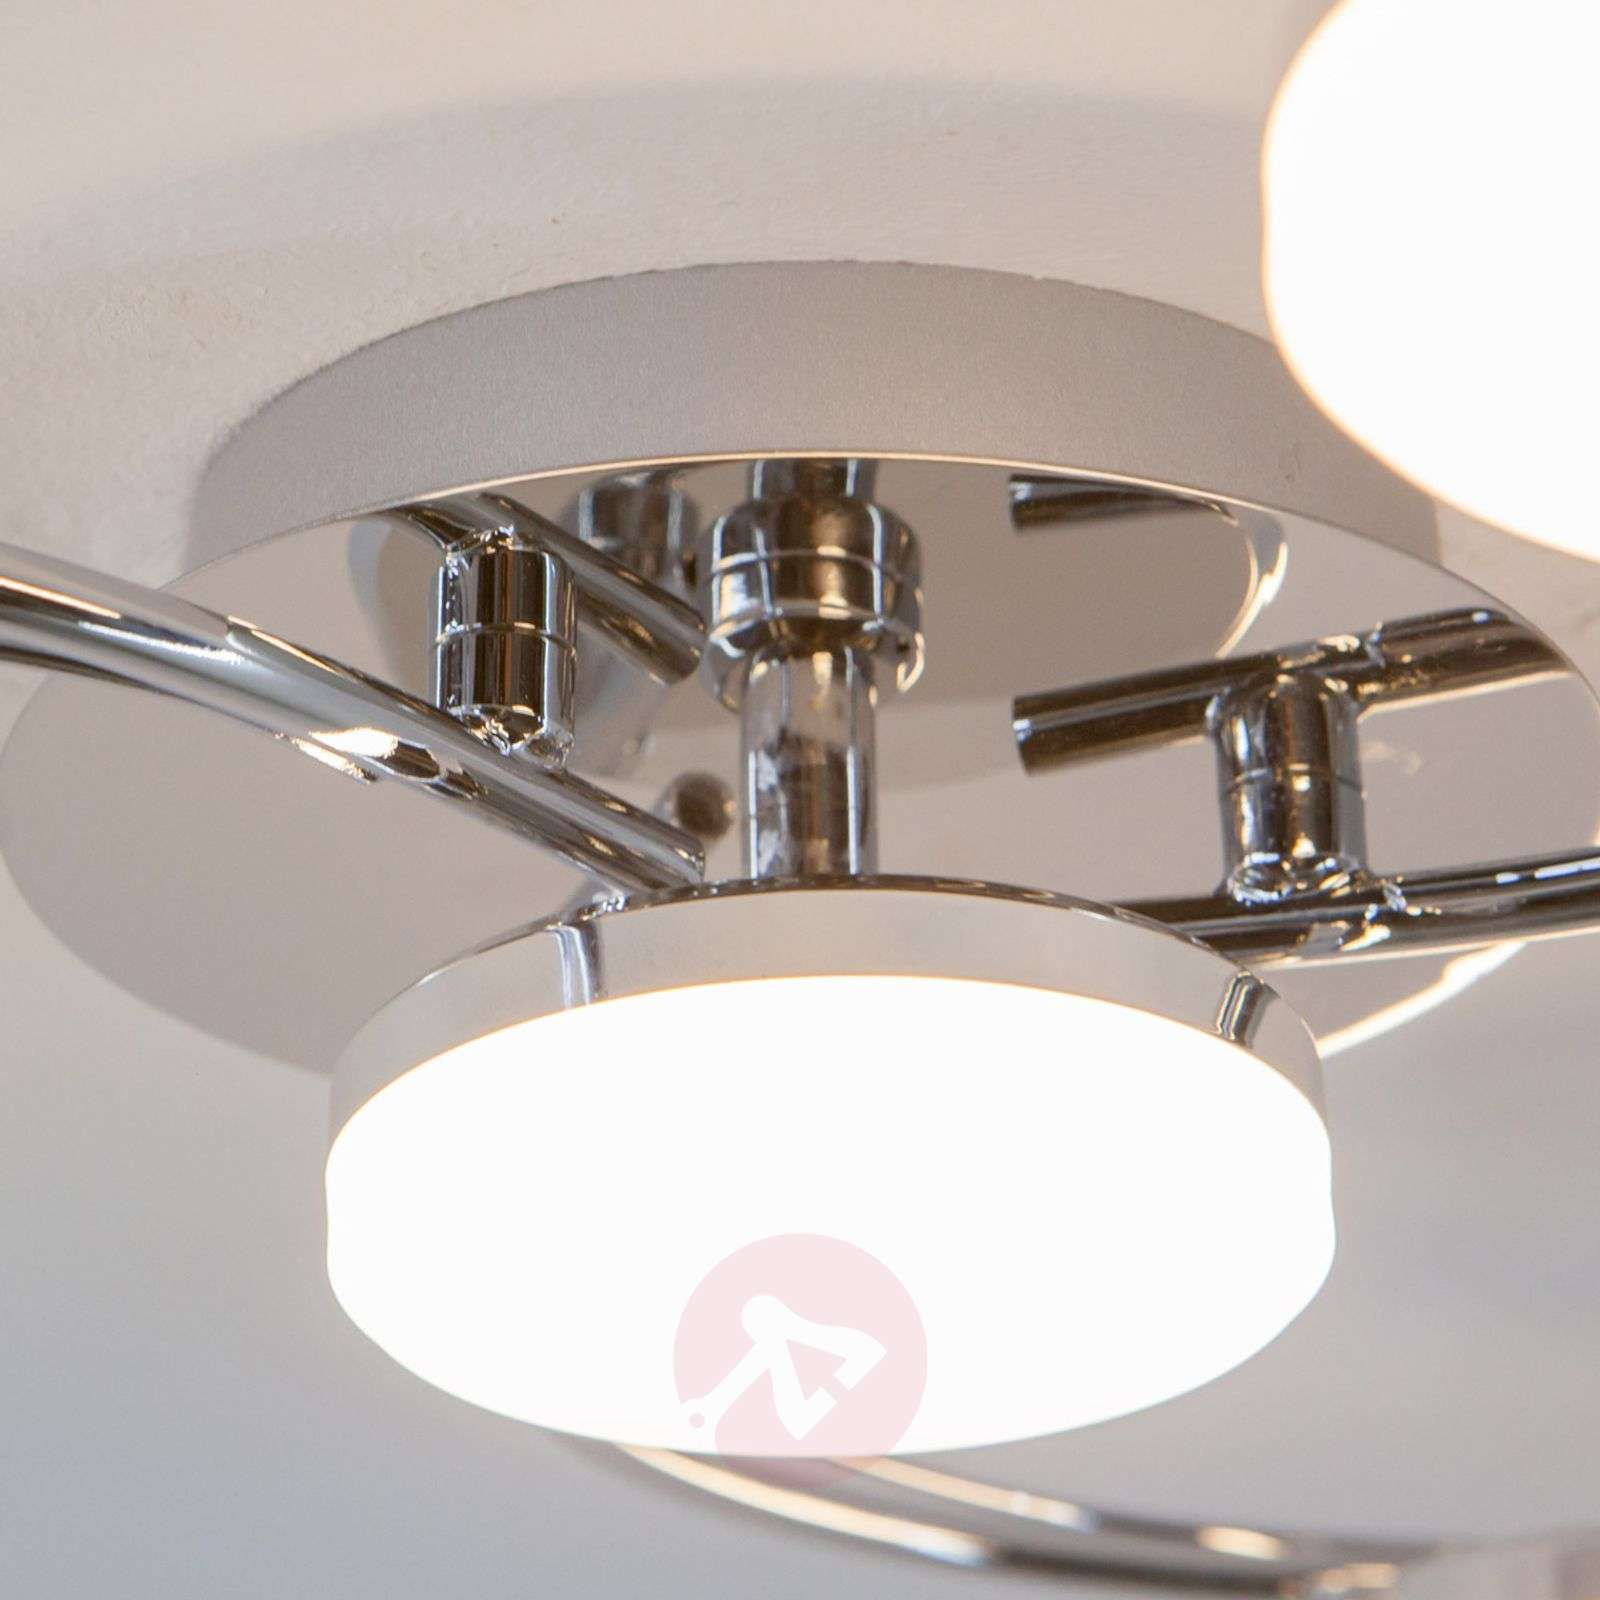 Attractive Lillith LED ceiling light-9981015-01